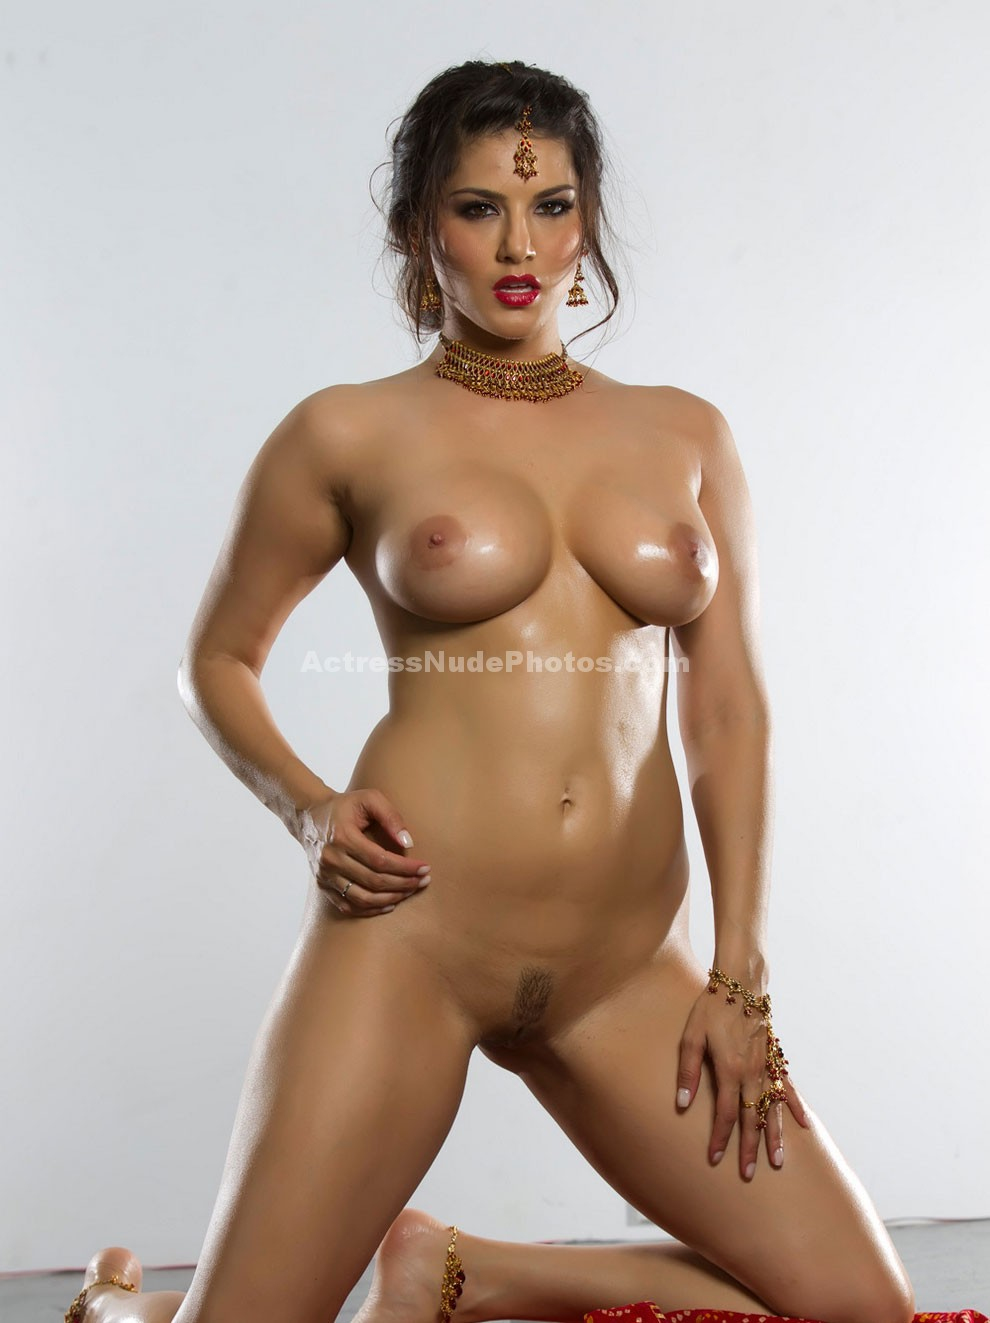 Best naked pussy pics